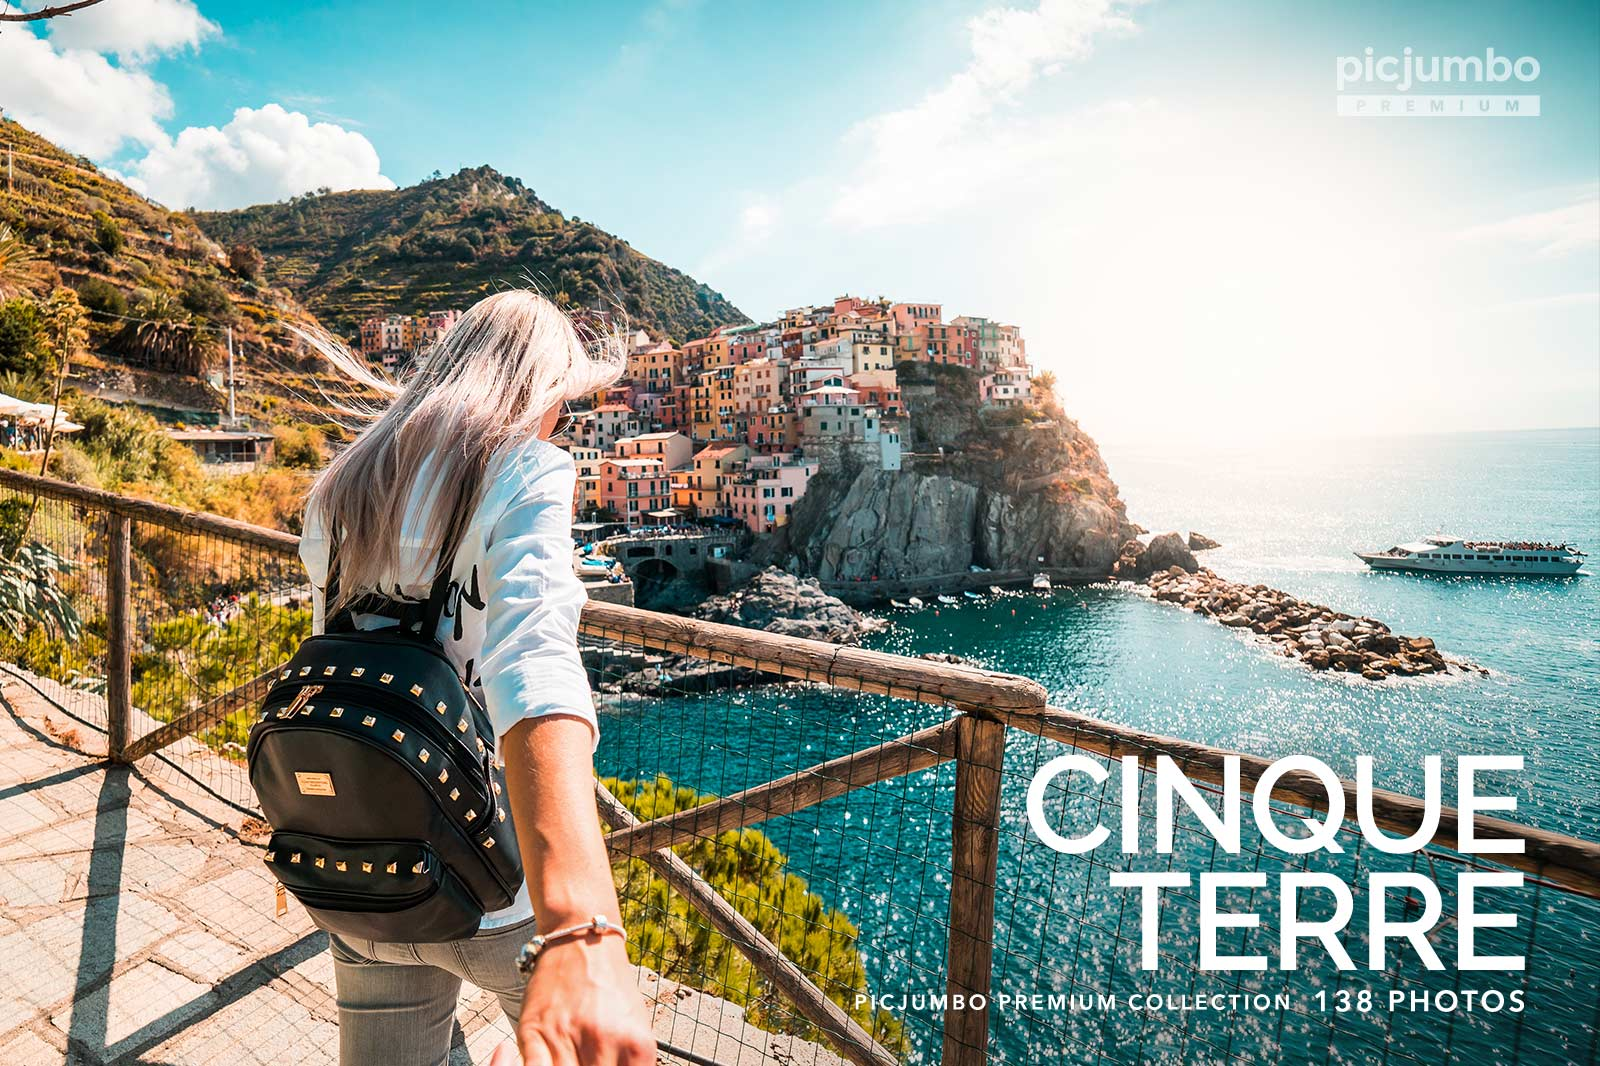 cinque-terre-photo-collection-picjumbo-p